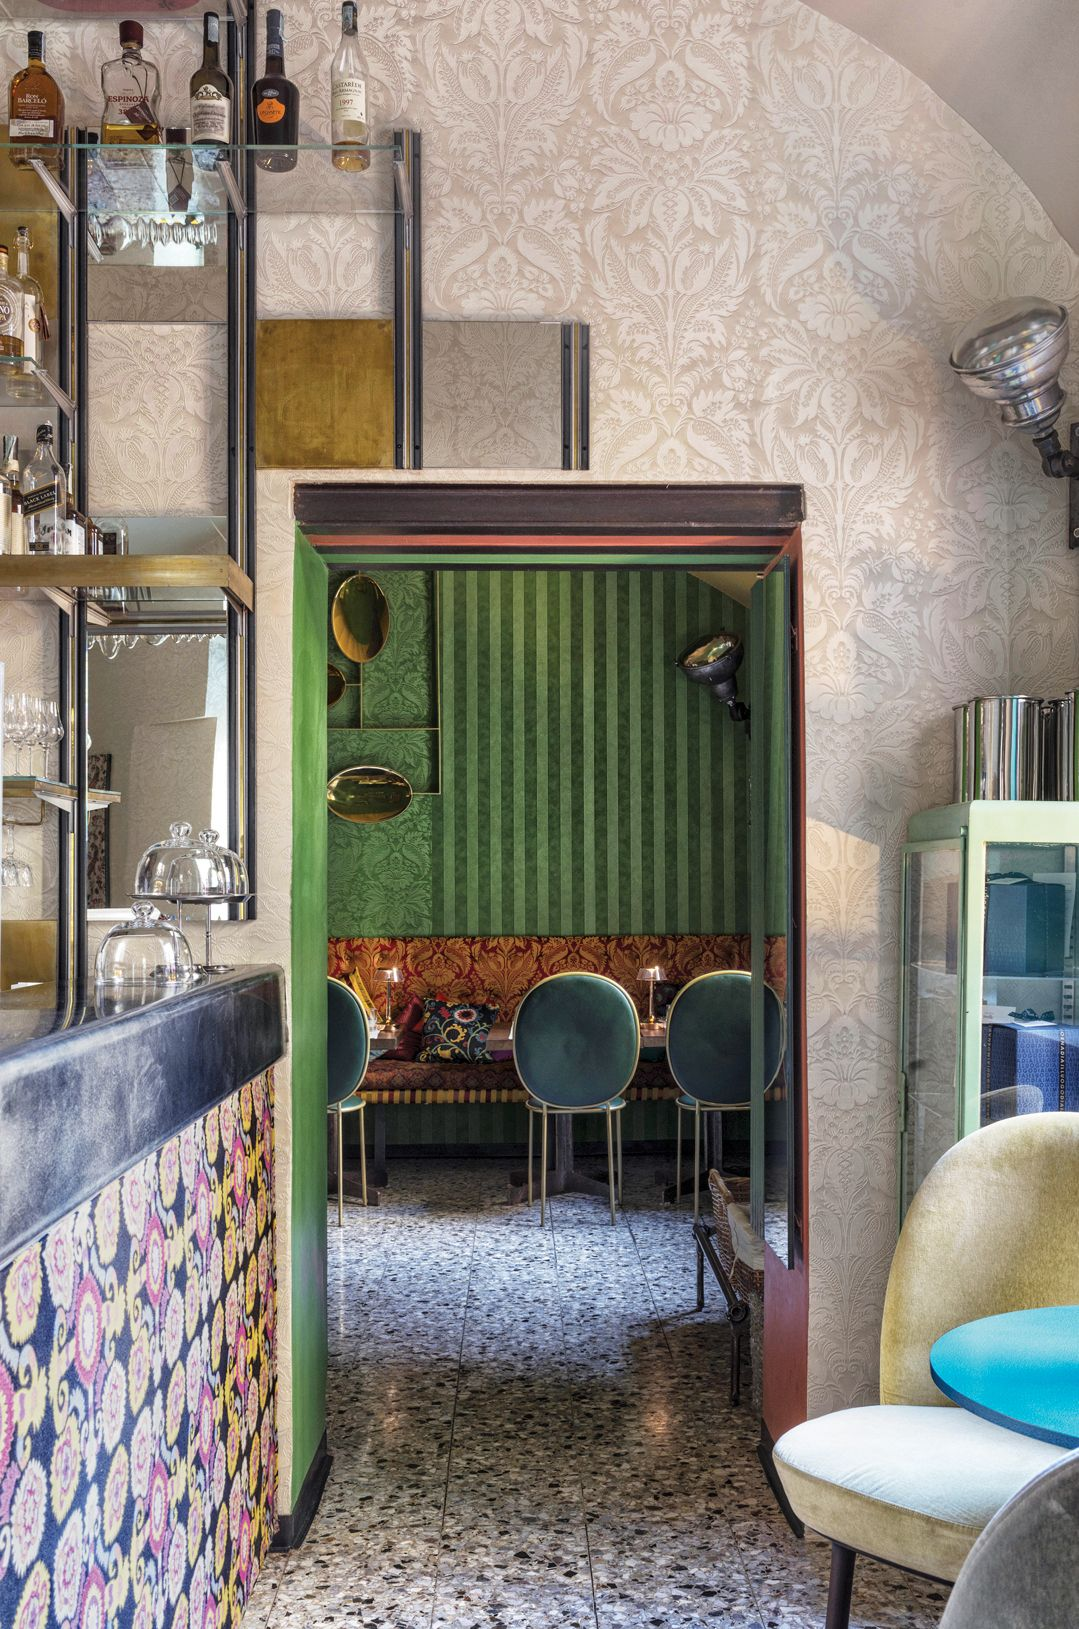 Tips on the best spots in Italy's design capital.